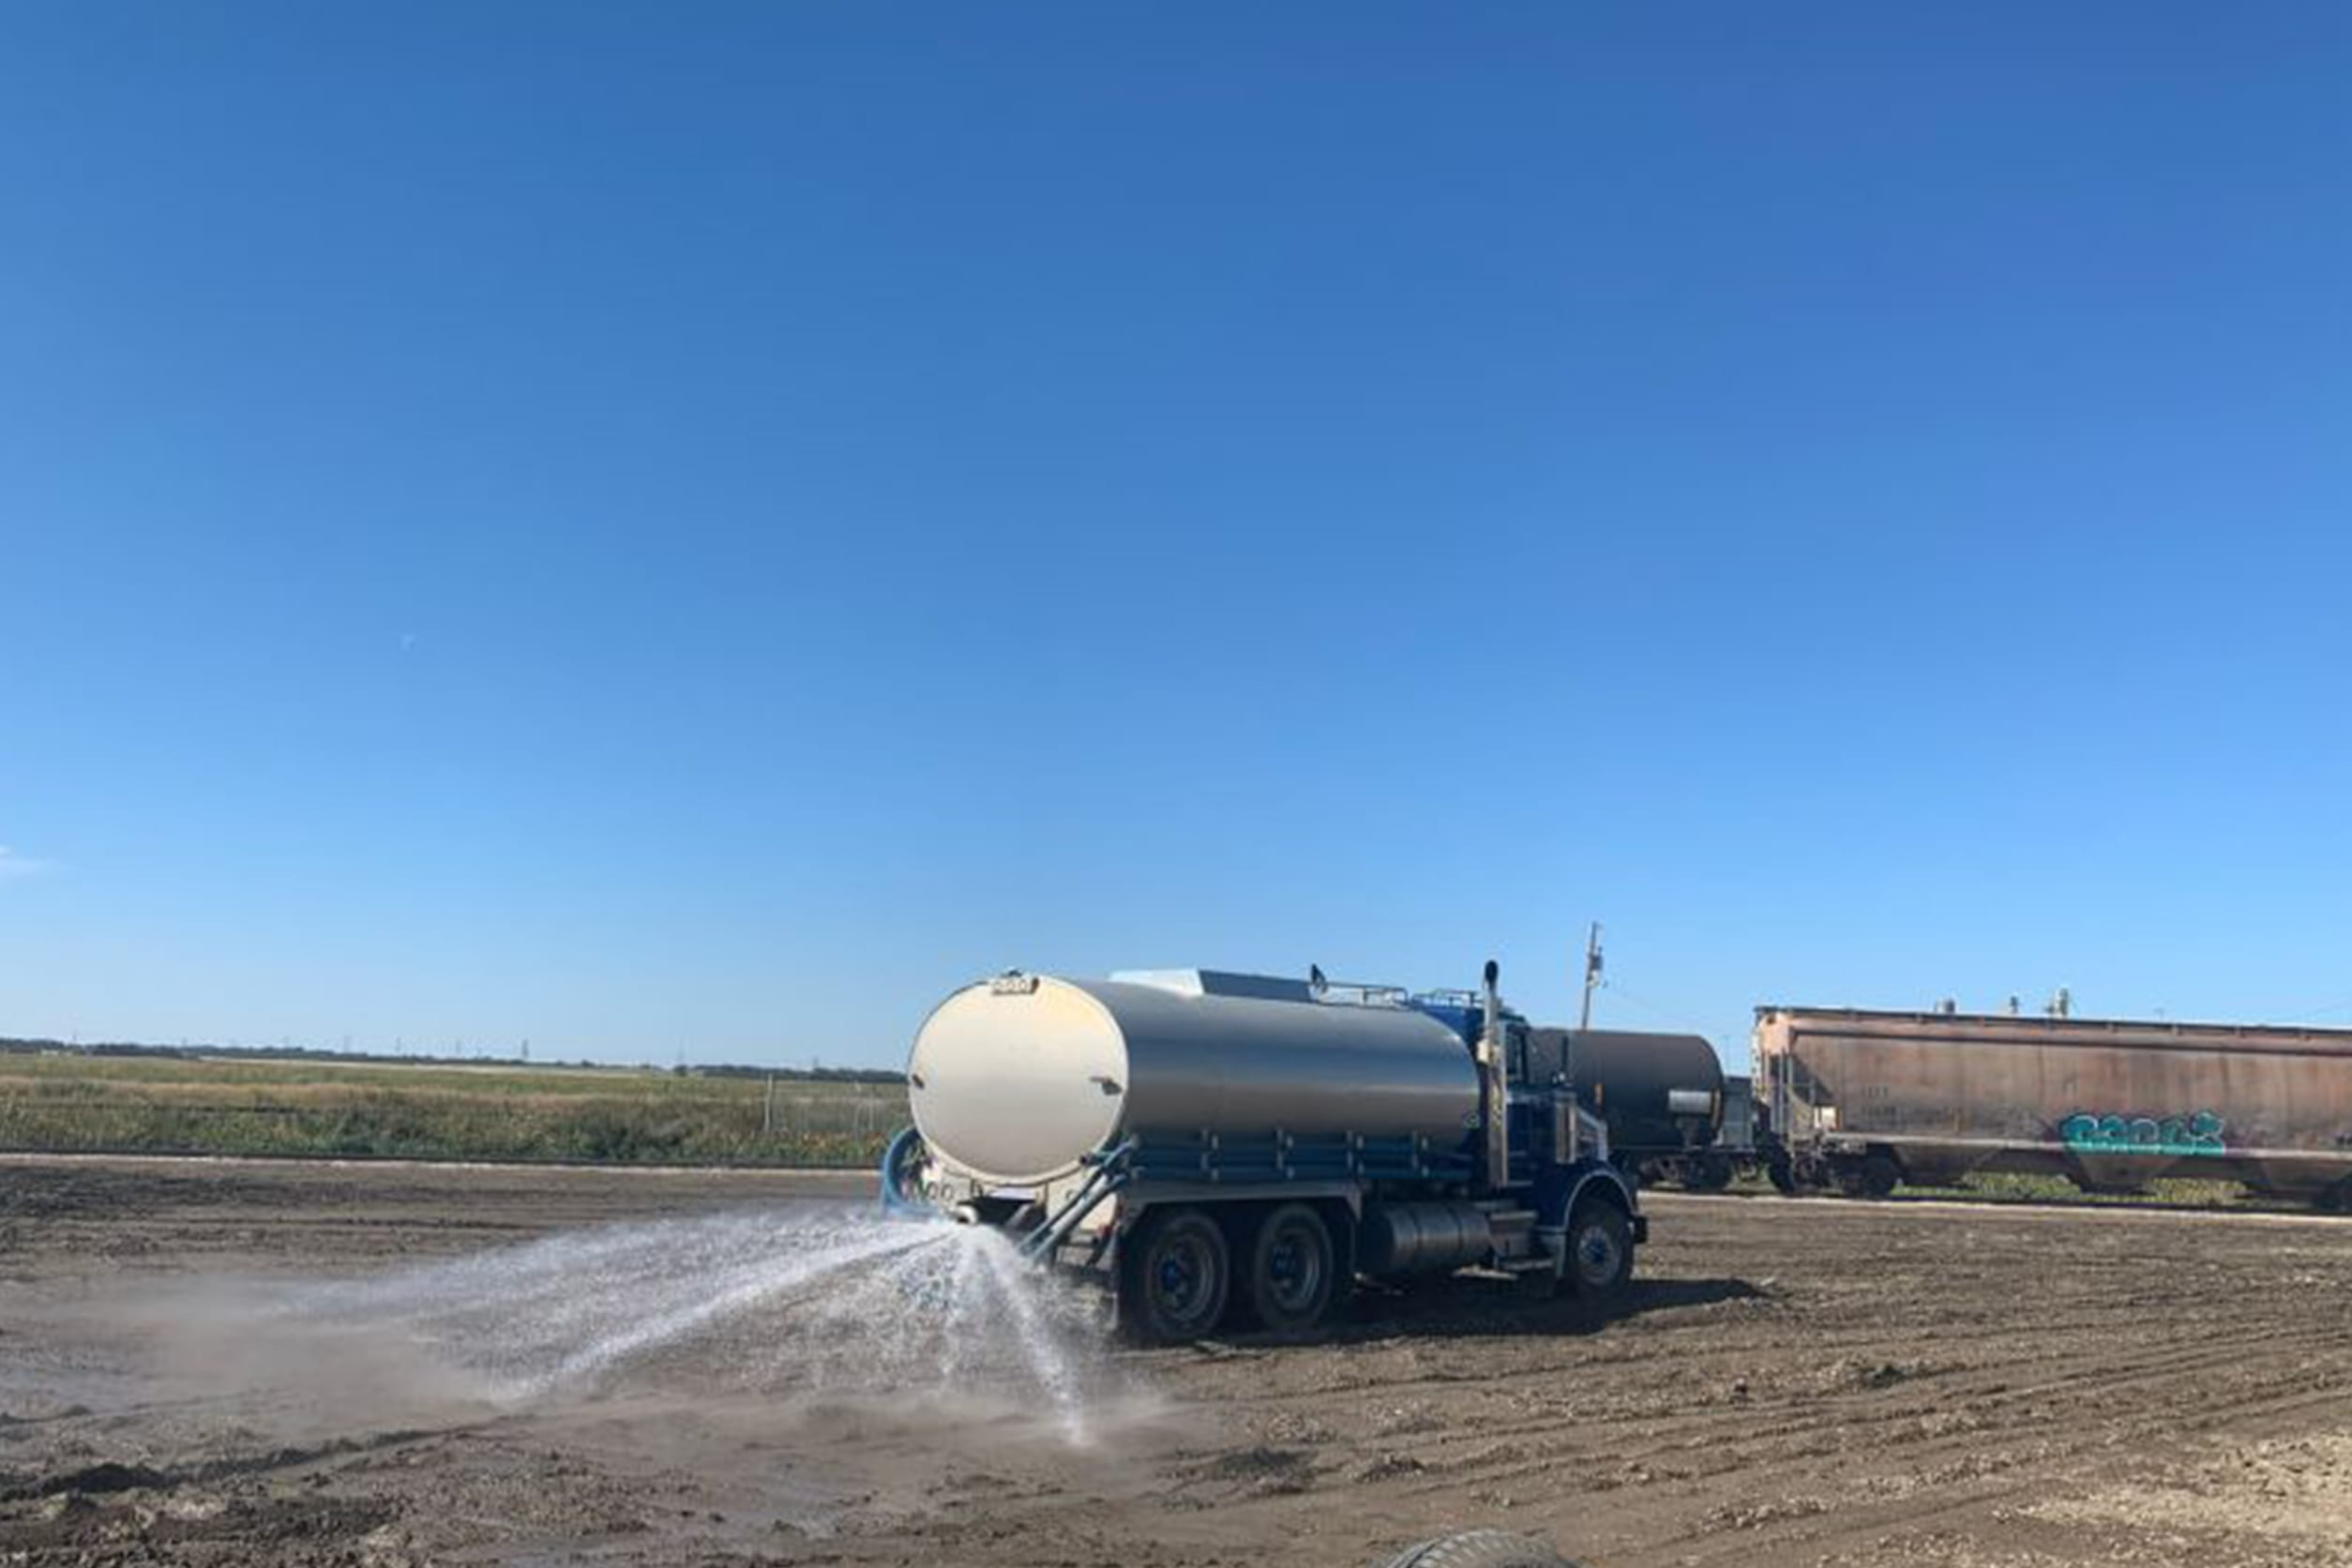 water tanker spraying water